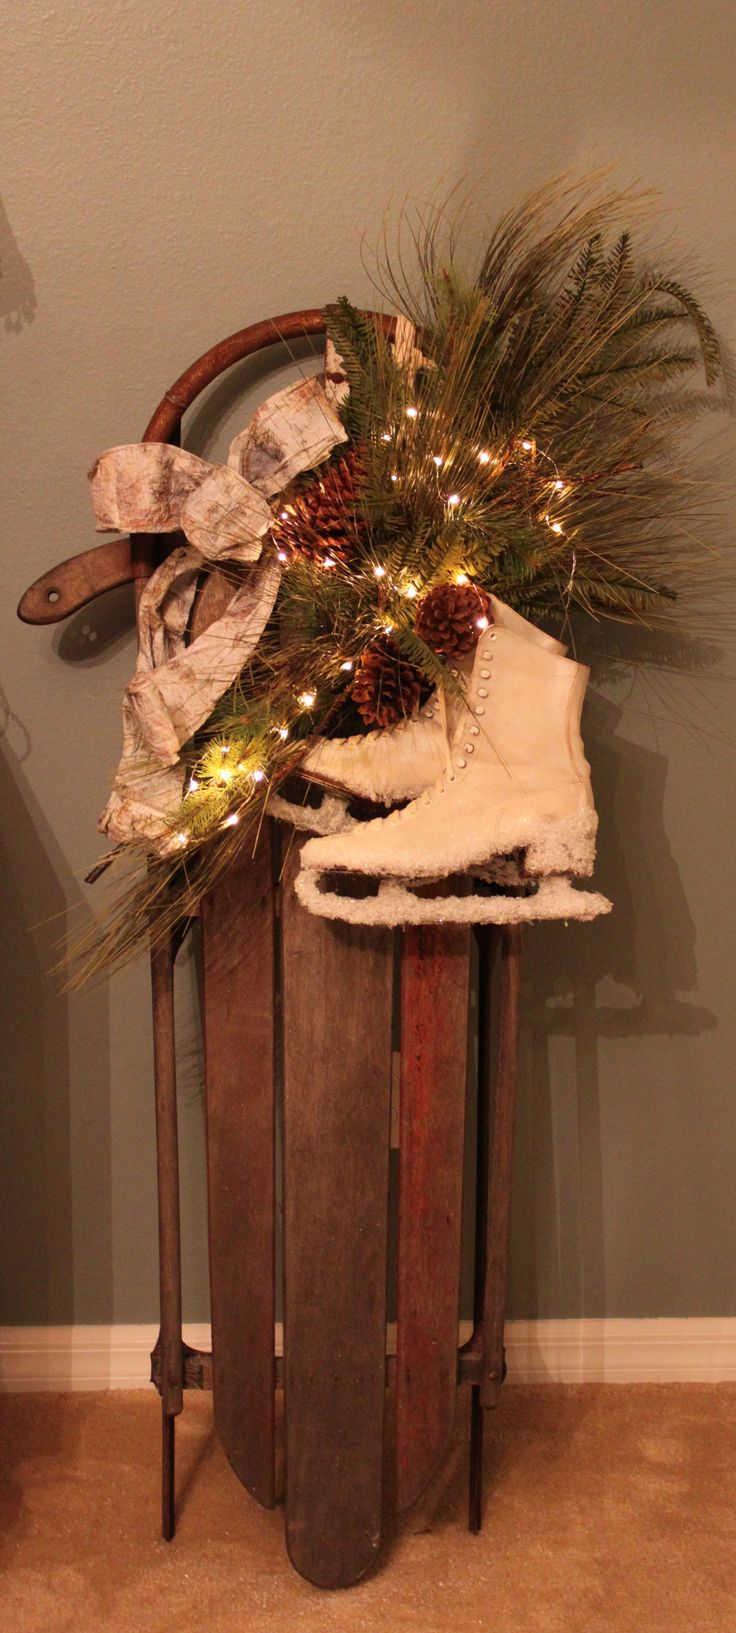 Decorate old sled for the Holidays.